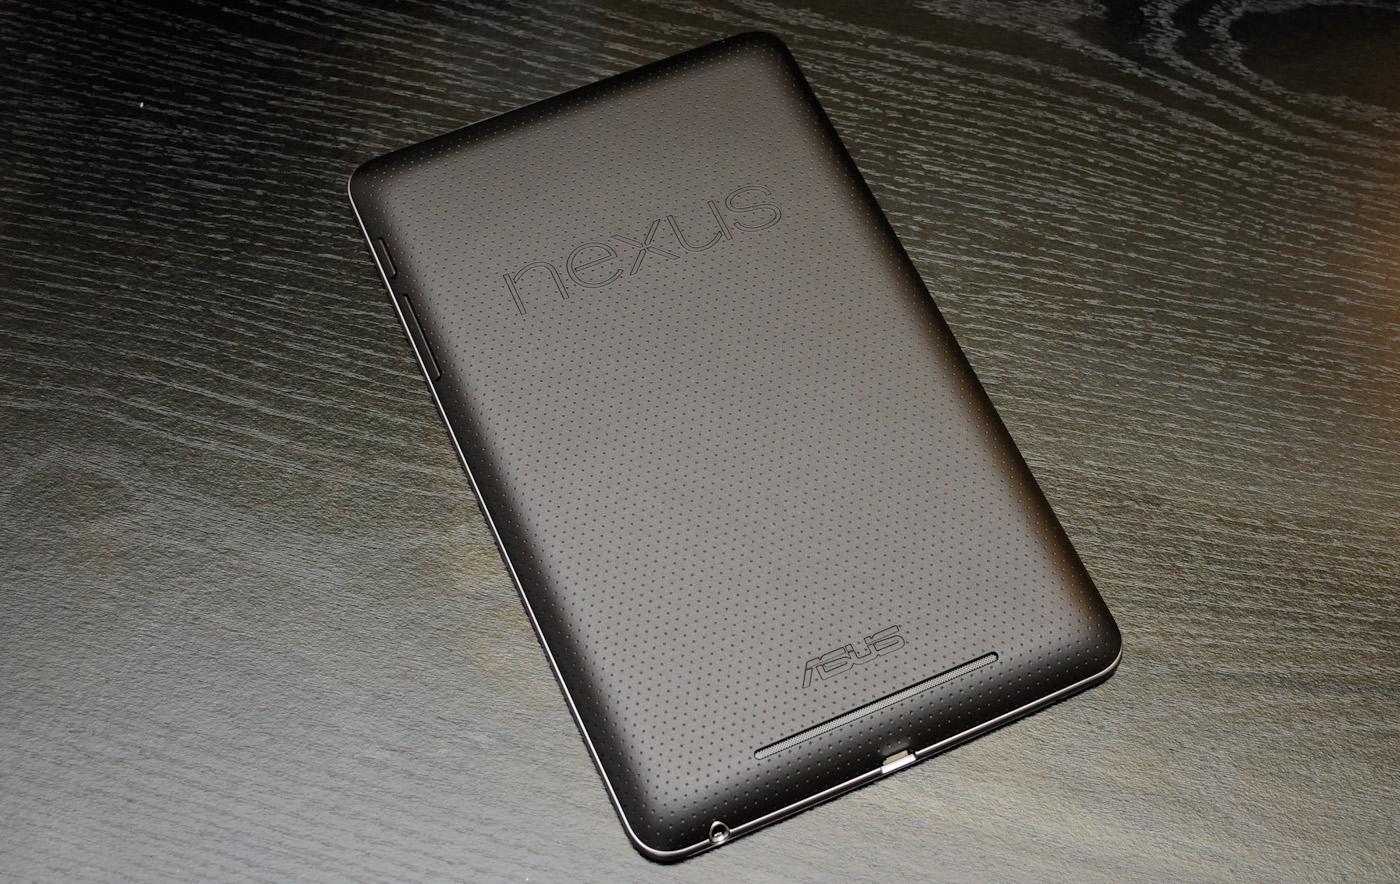 The Nexus 7 comes with Android 4.1 Jelly Bean installed, which we're